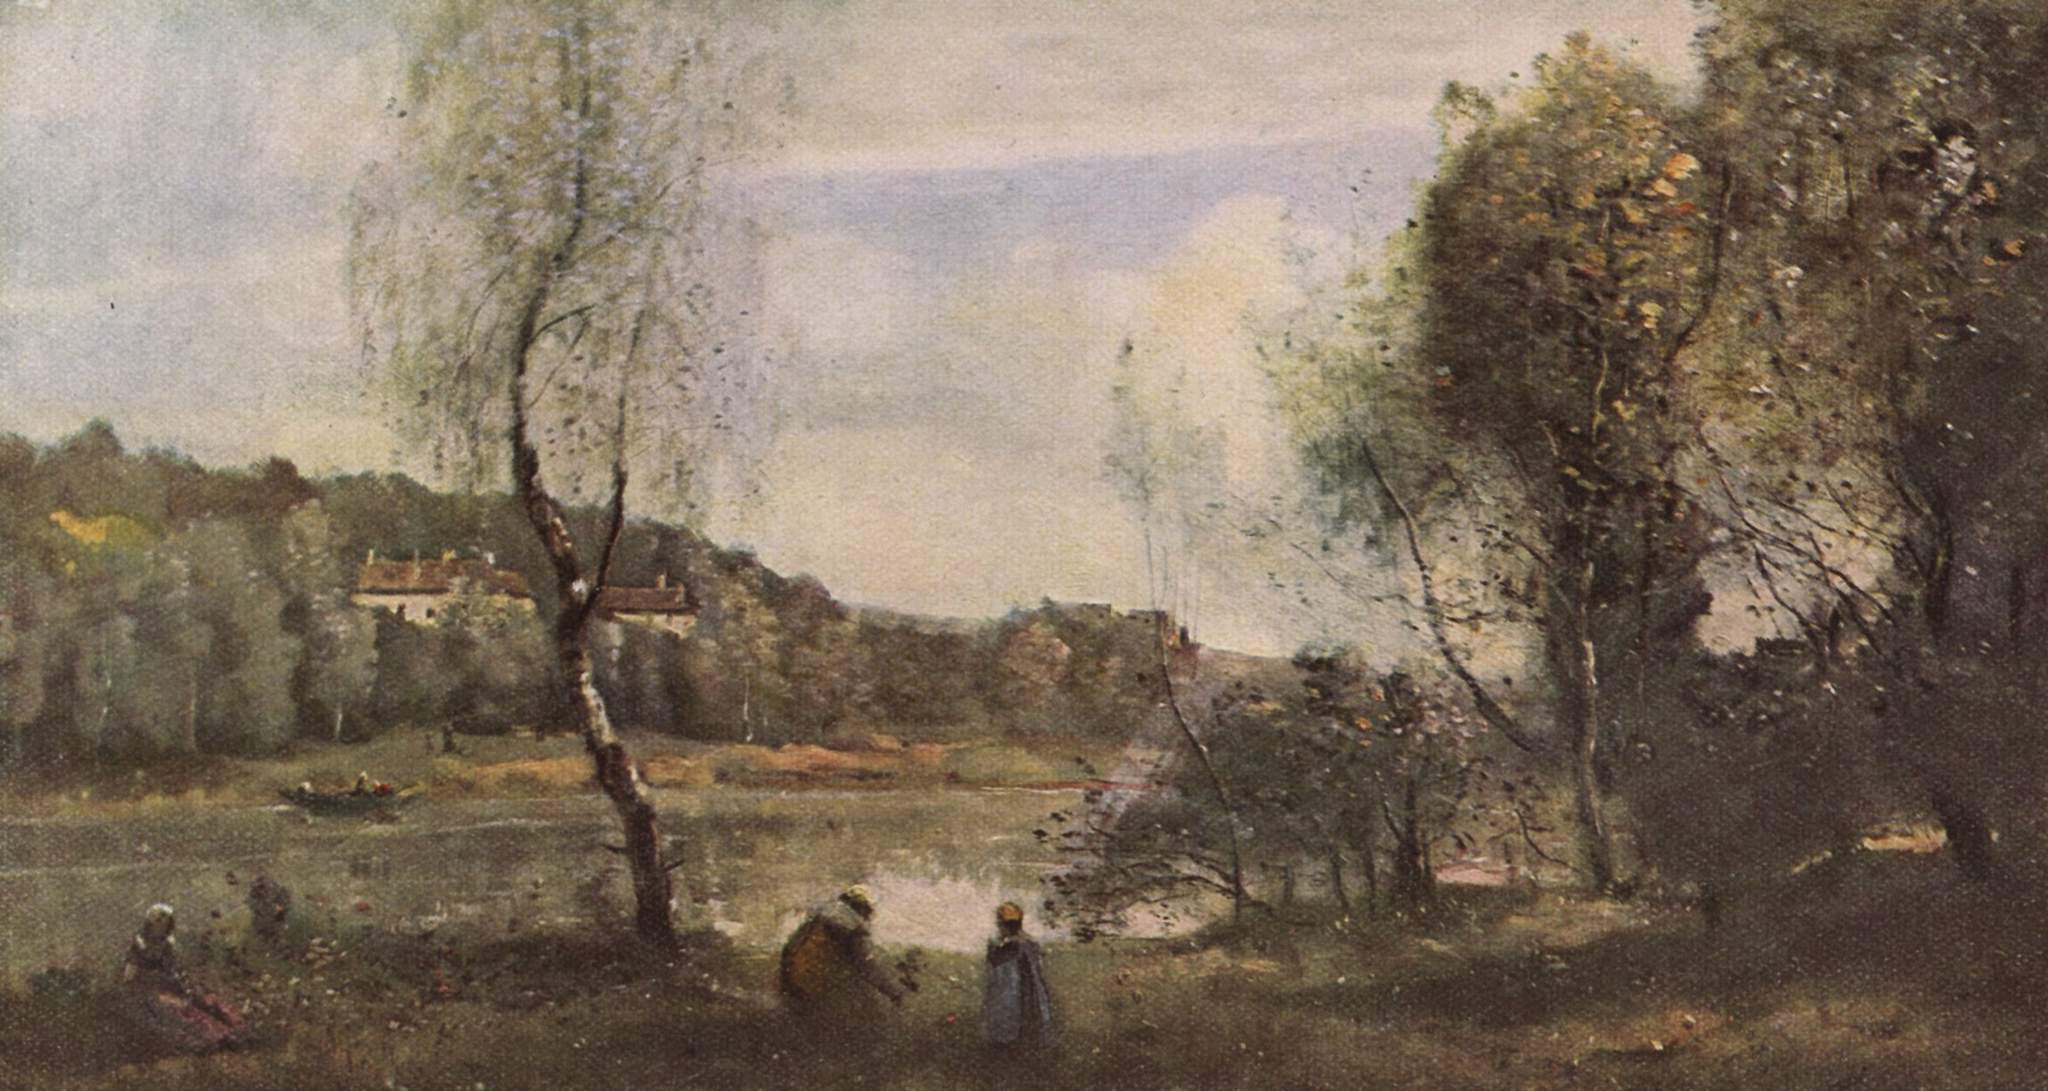 Pond of ville d 39 avray 1873 camille corot for Camille corot